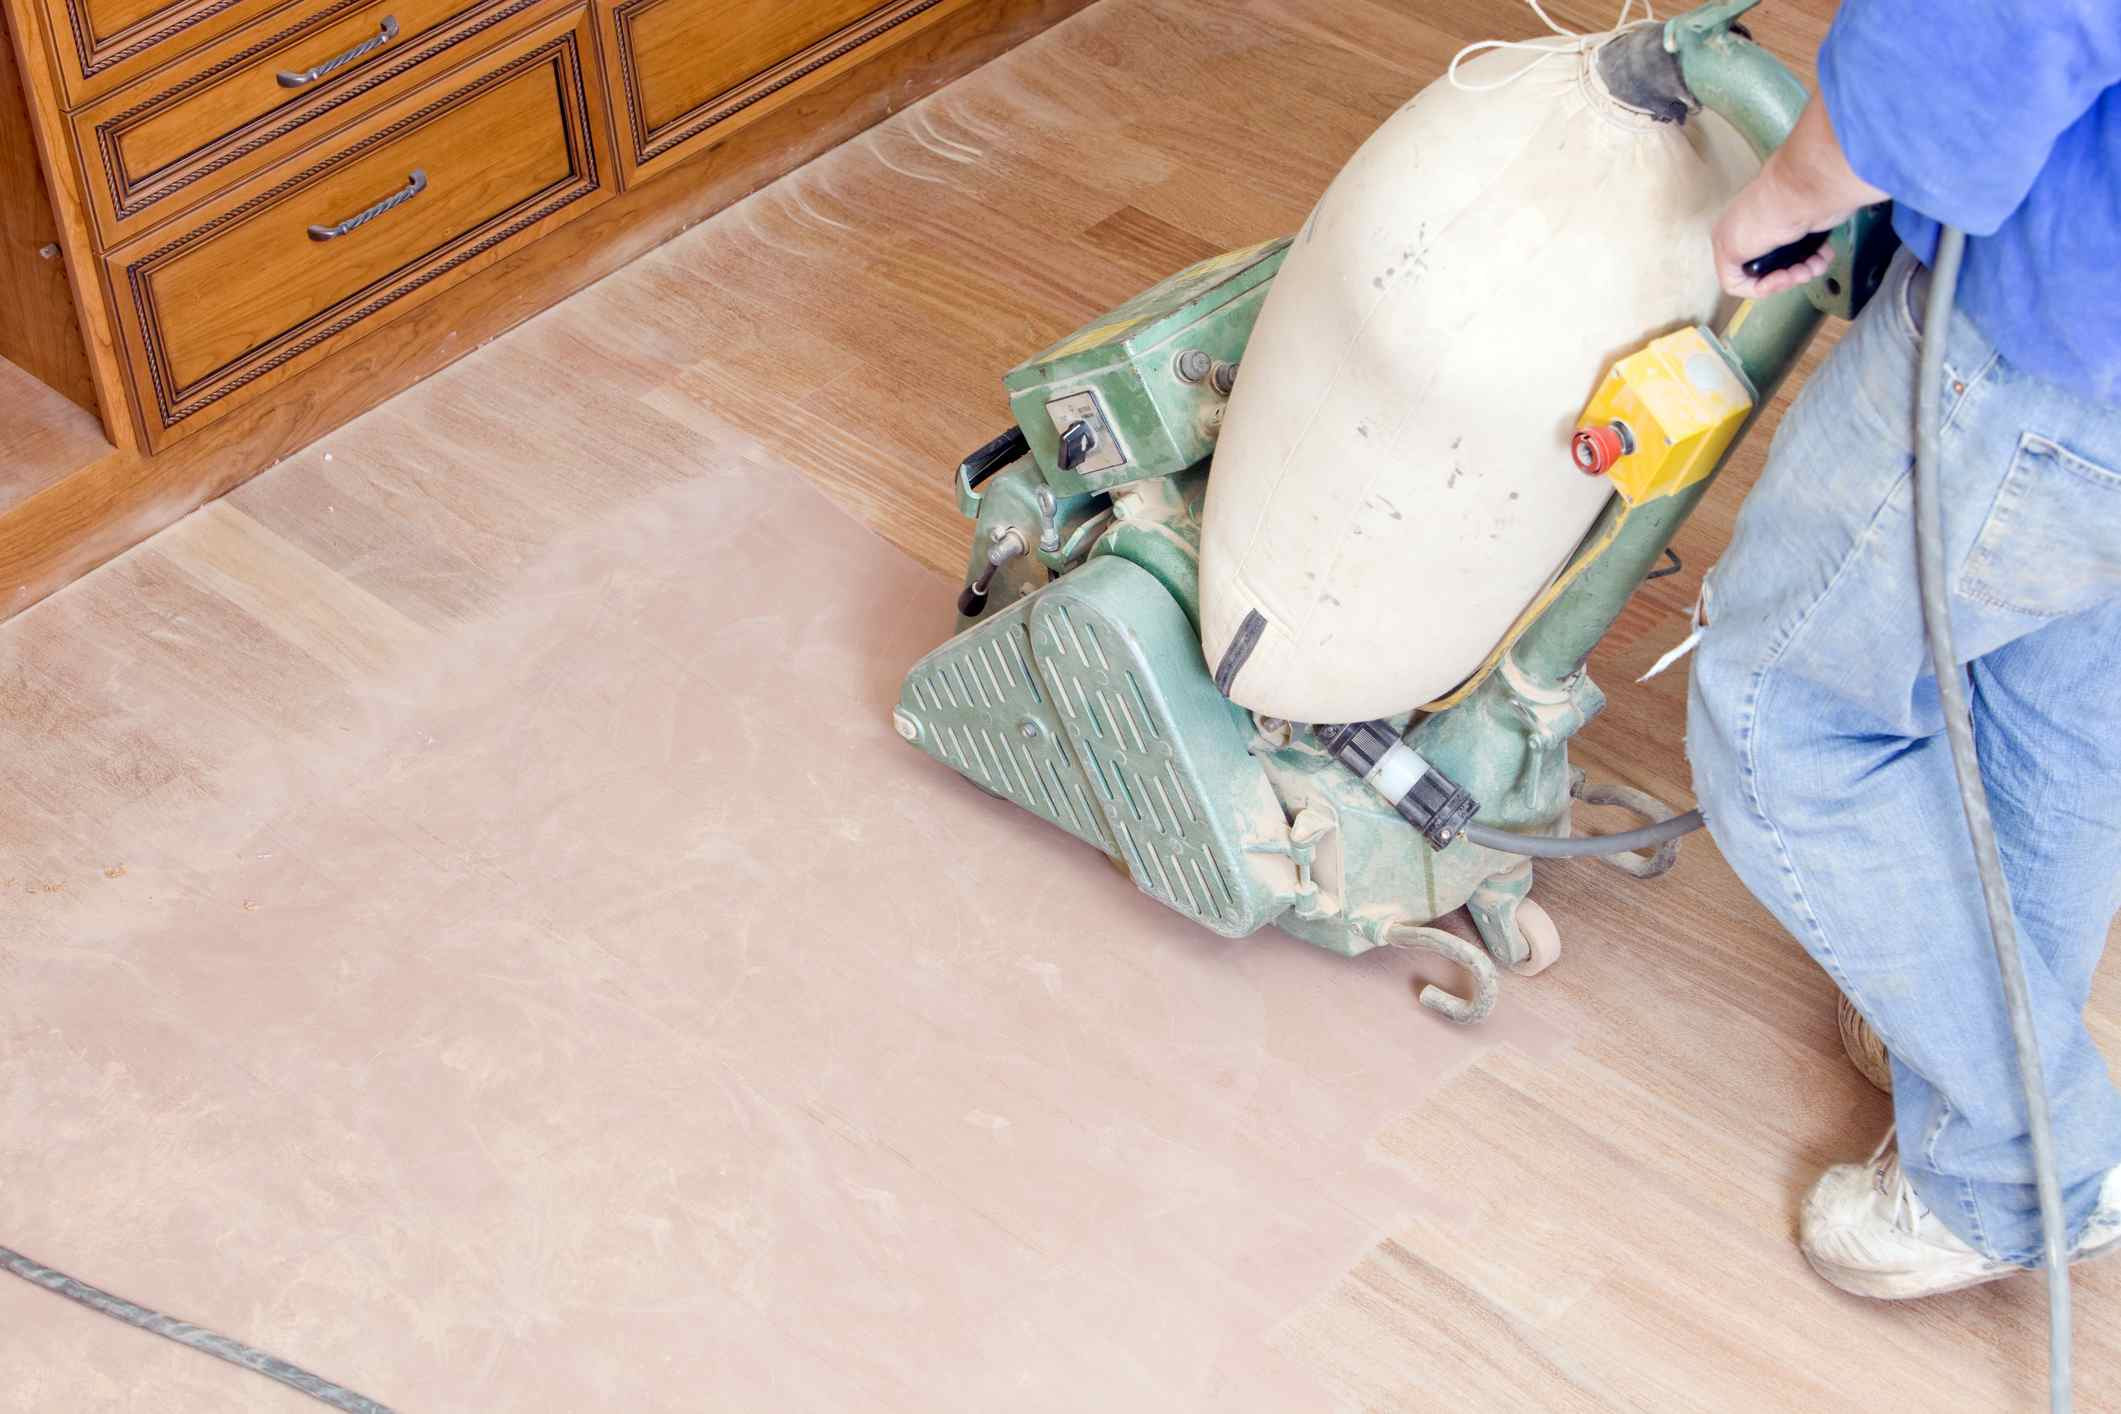 sanding hardwood floors yourself of how to sand hardwood floors pertaining to gettyimages 183776482 587b01375f9b584db3a41541